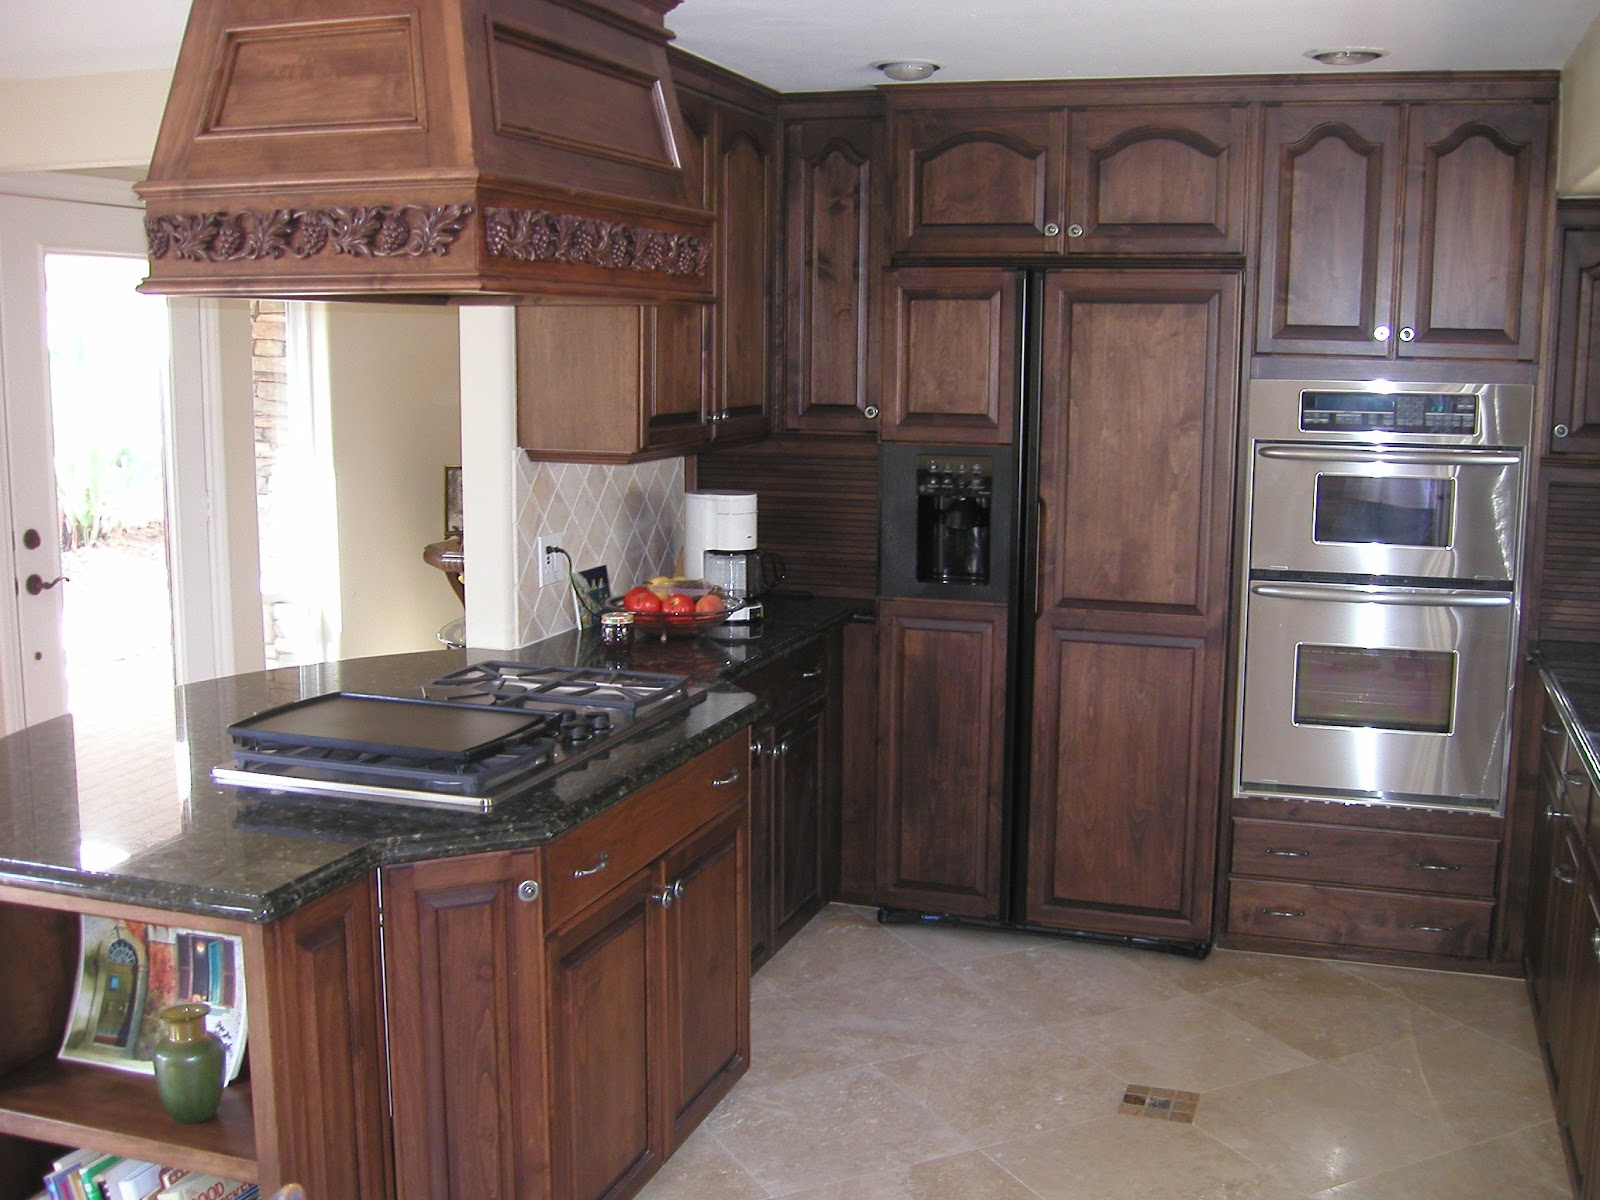 Home design ideas oak kitchen cabinets design ideas for Paint ideas for kitchen with oak cabinets